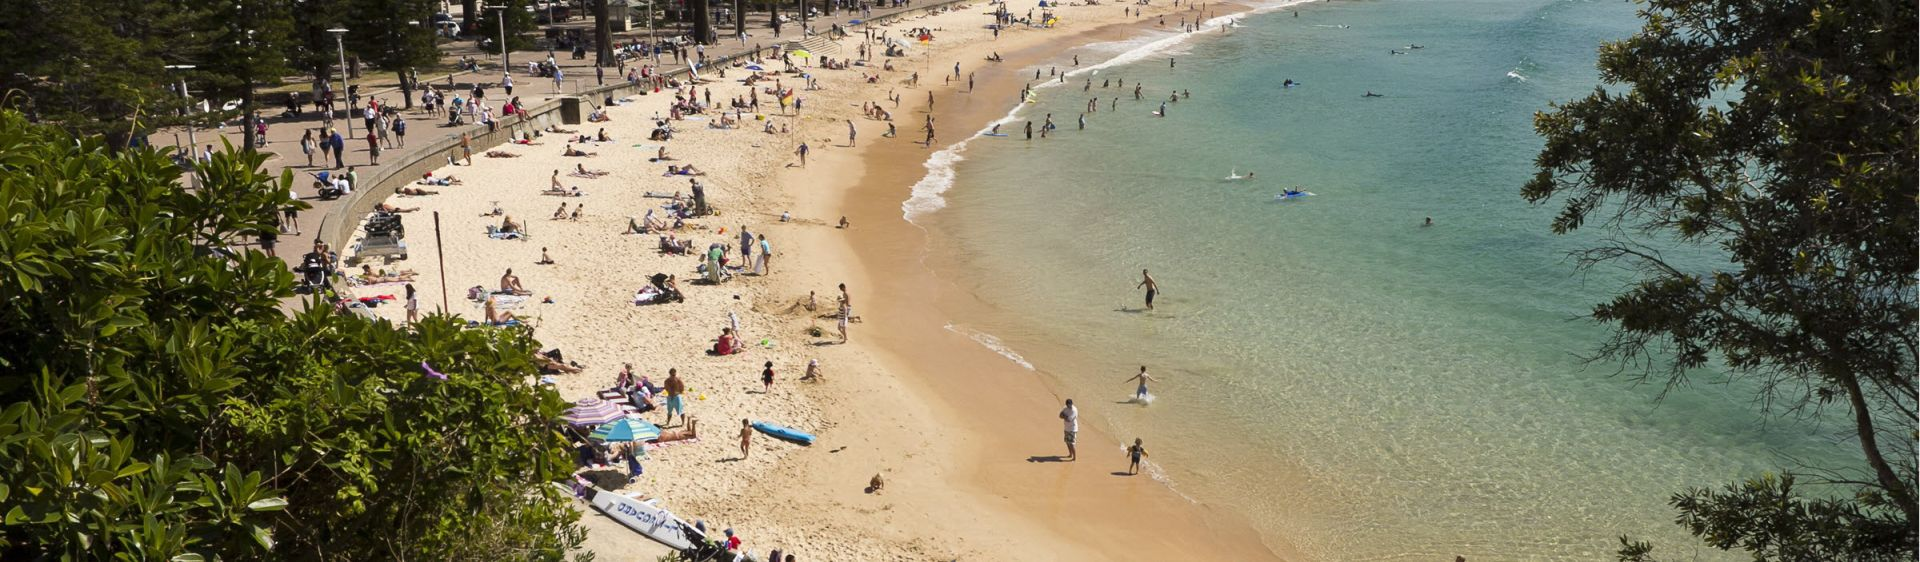 Sydney Australia Official Travel Accommodation Website Manly Beach